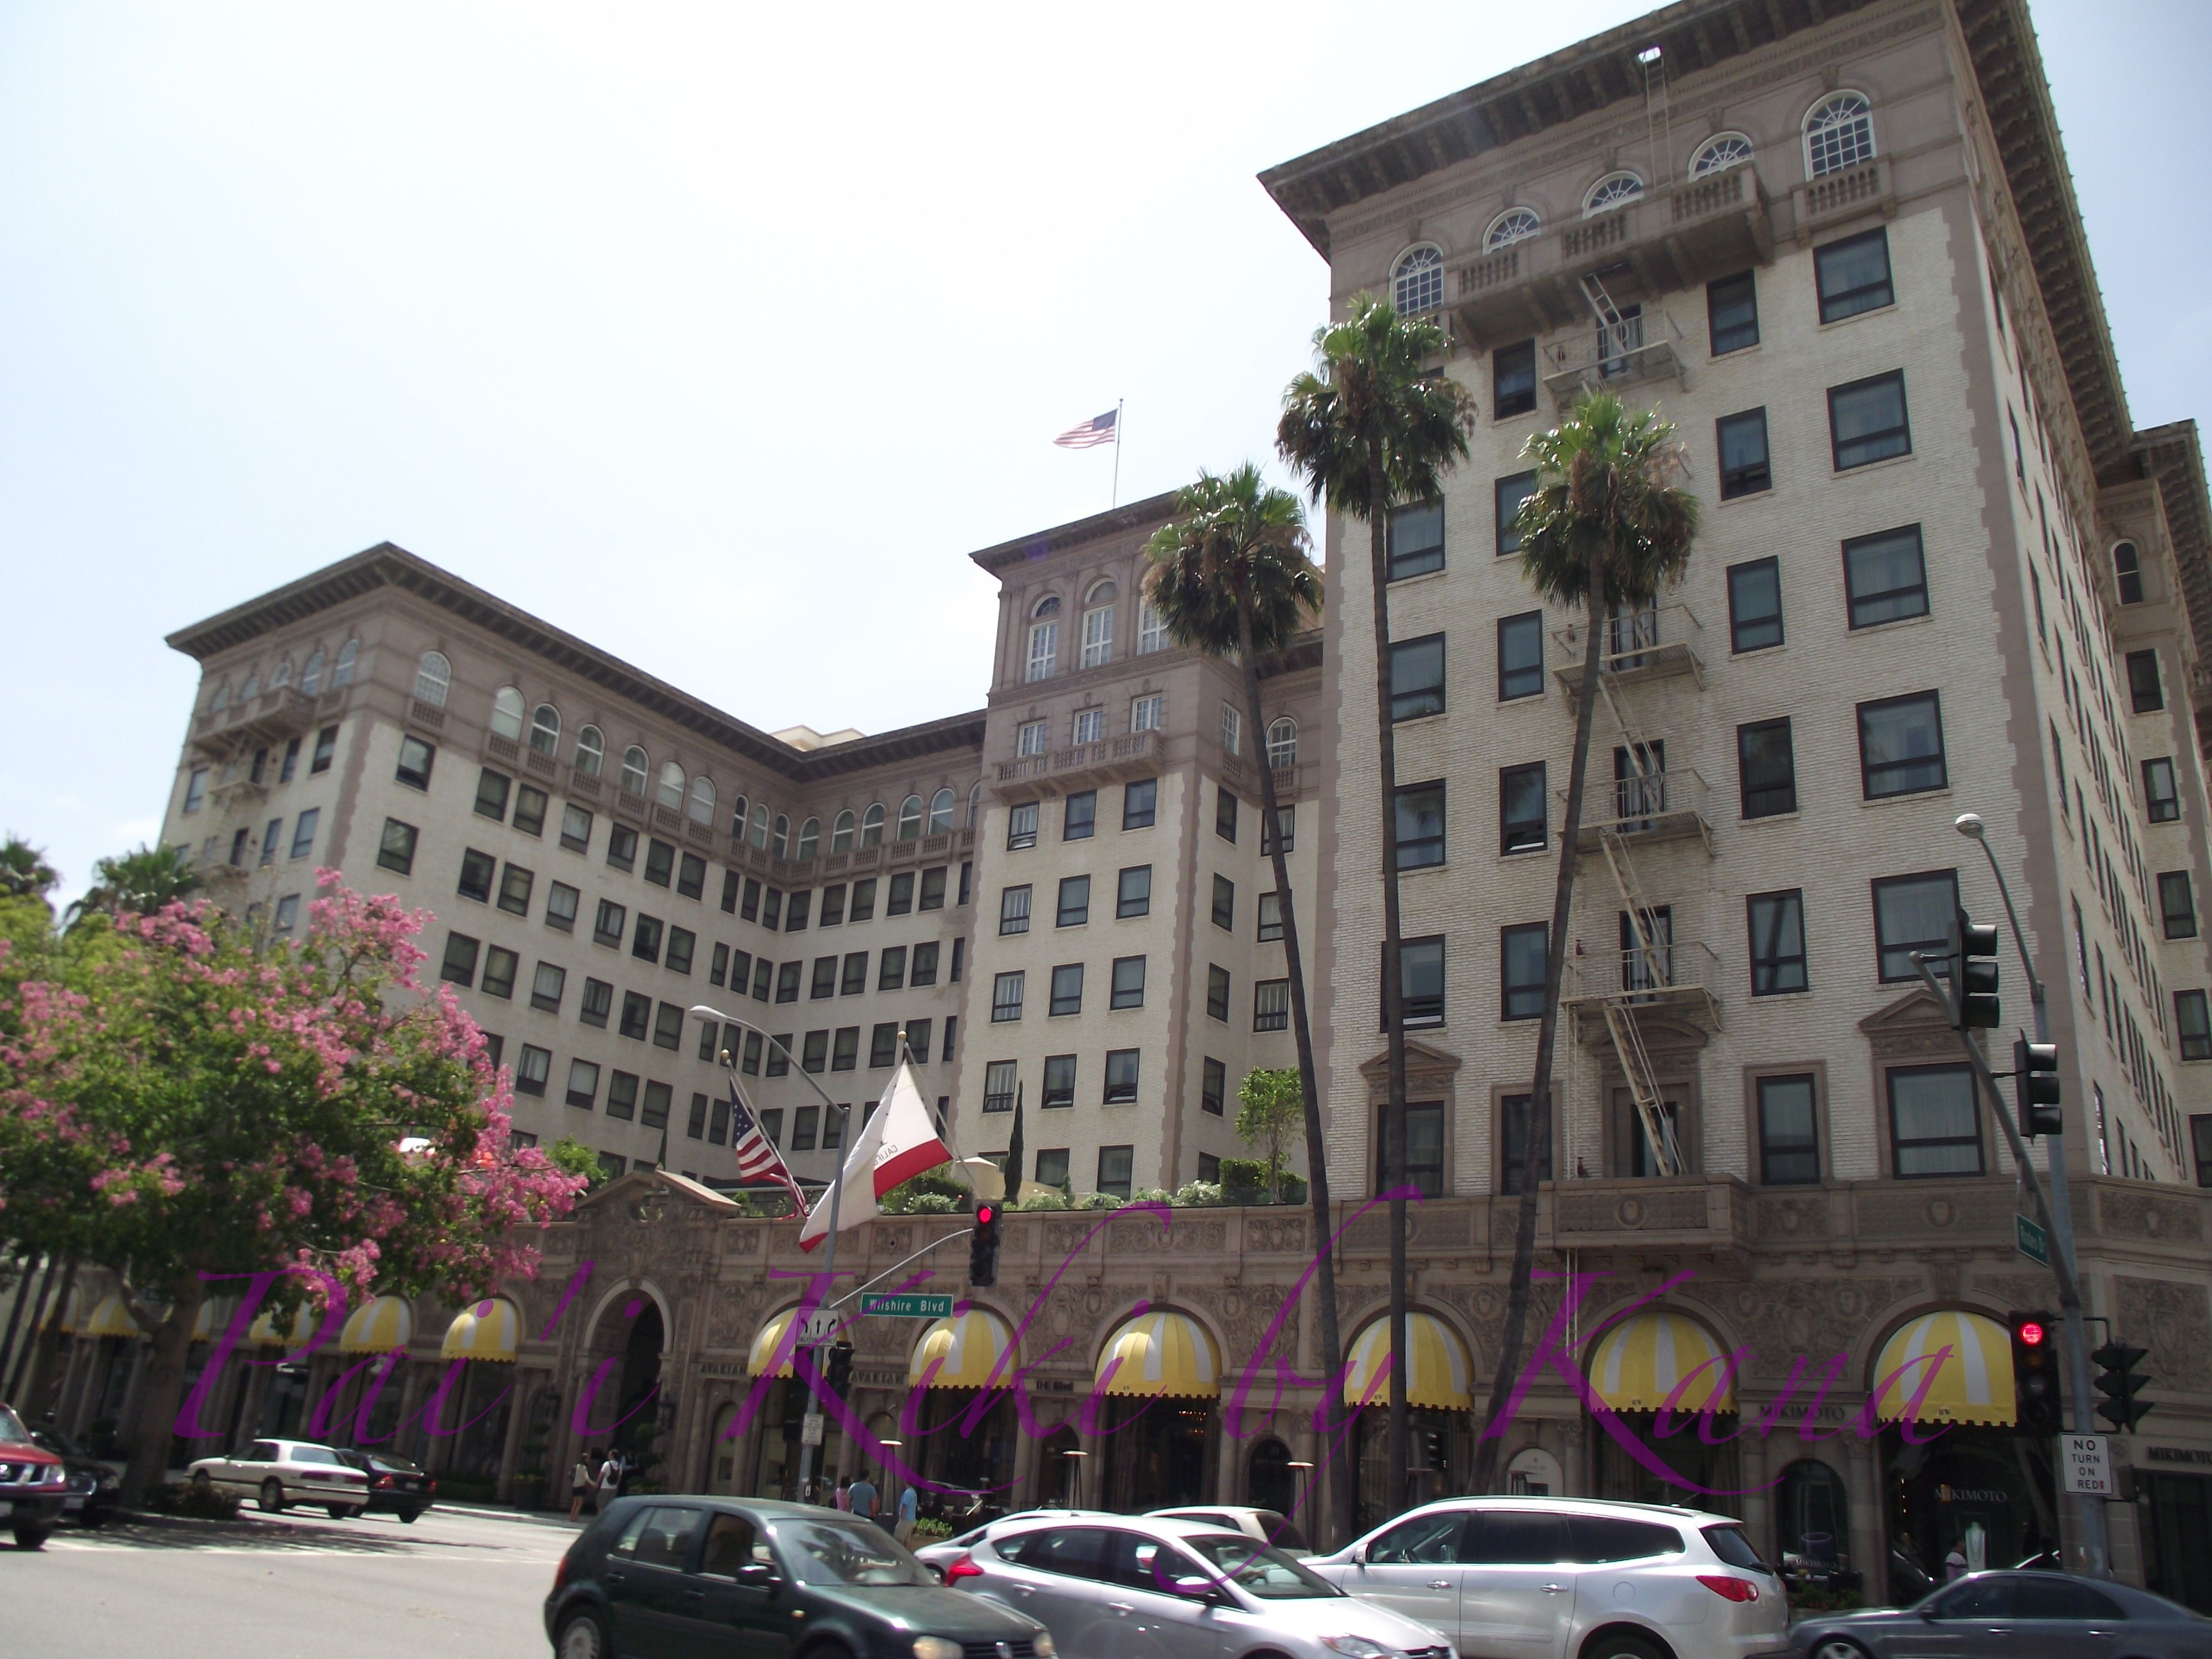 The Hotel Where Pretty Woman Was Filmed In Beverly Hills California Off Rodeo Drive